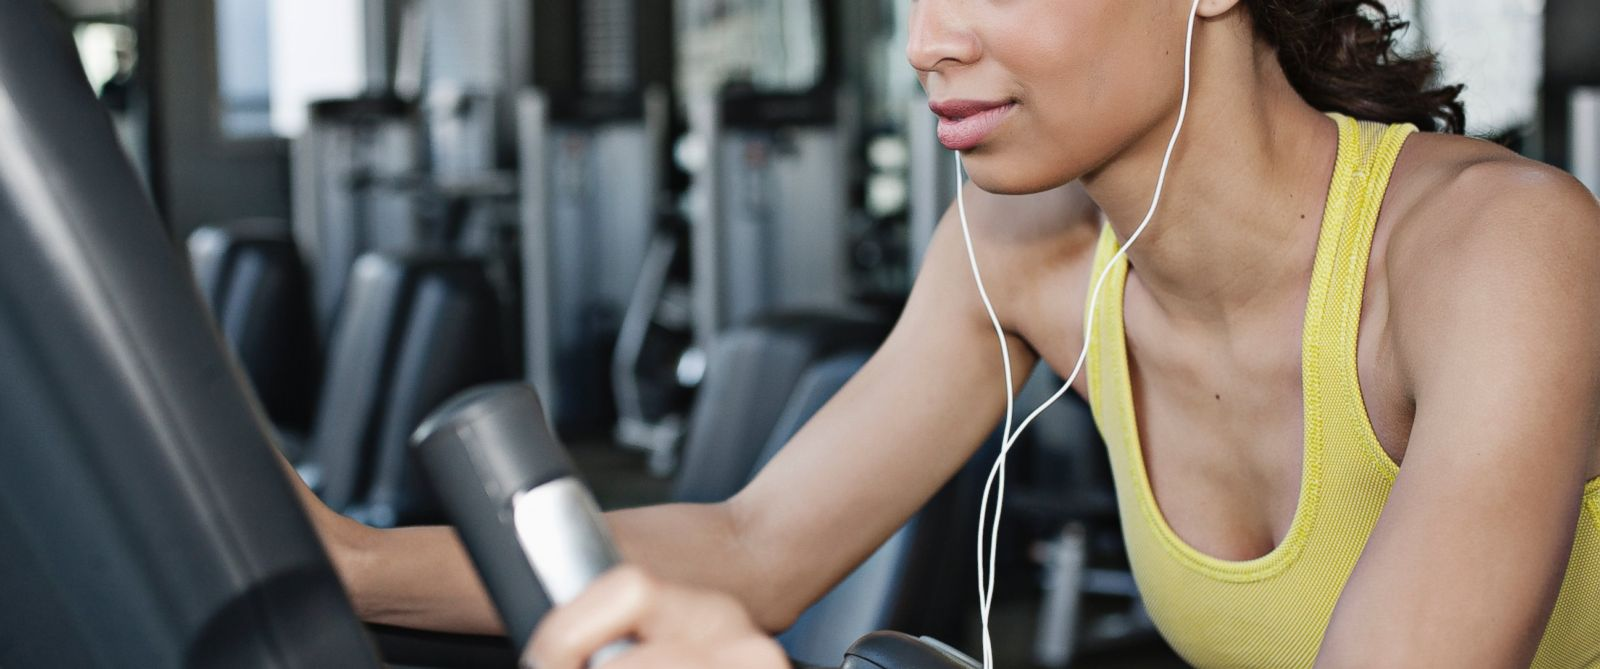 PHOTO: A woman listens to music as she exercieses at the gym.